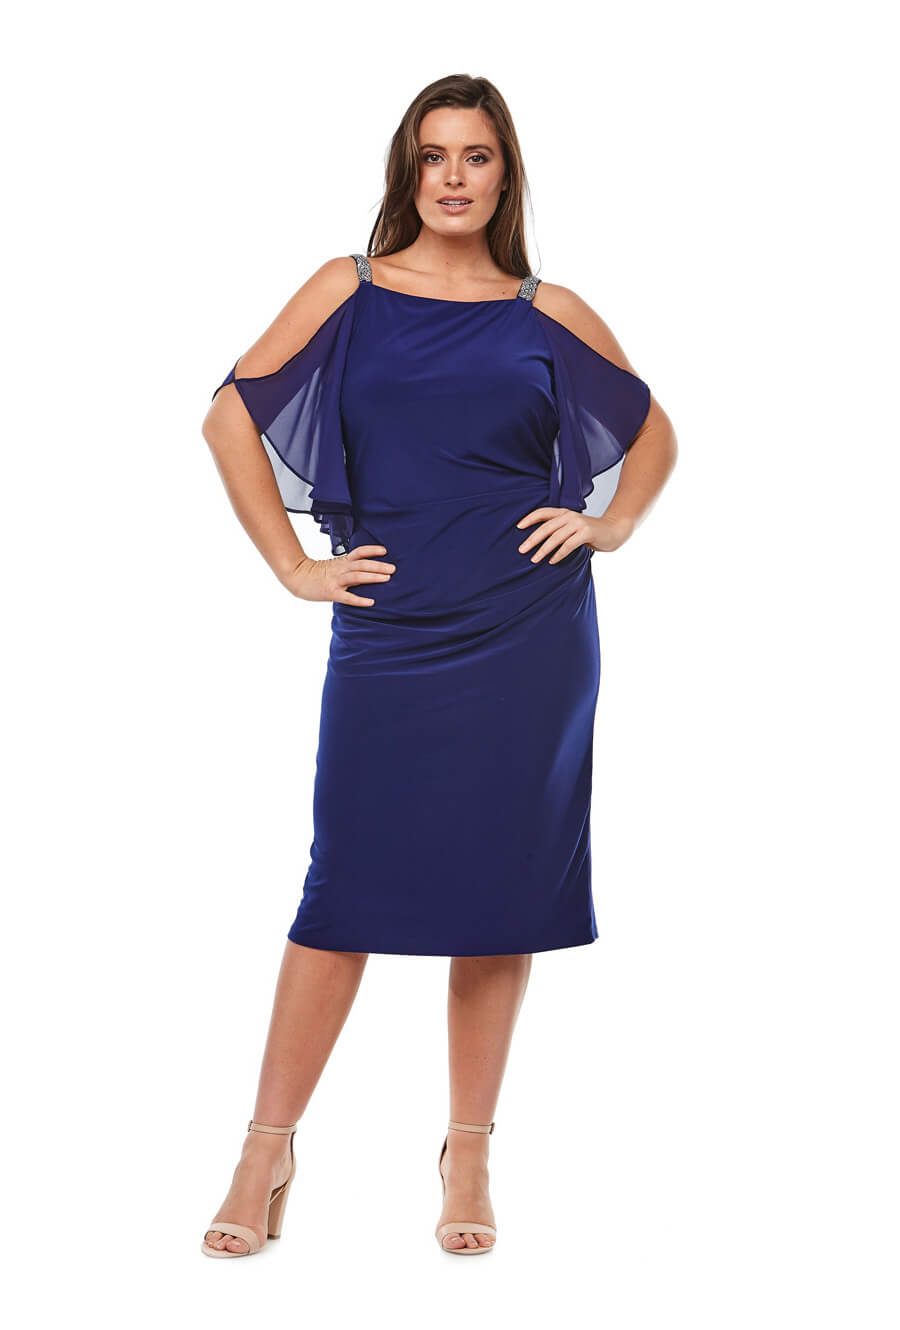 Stretch jersey cocktail dress with chiffon cold-shoulder sleeves & beaded neckline trim